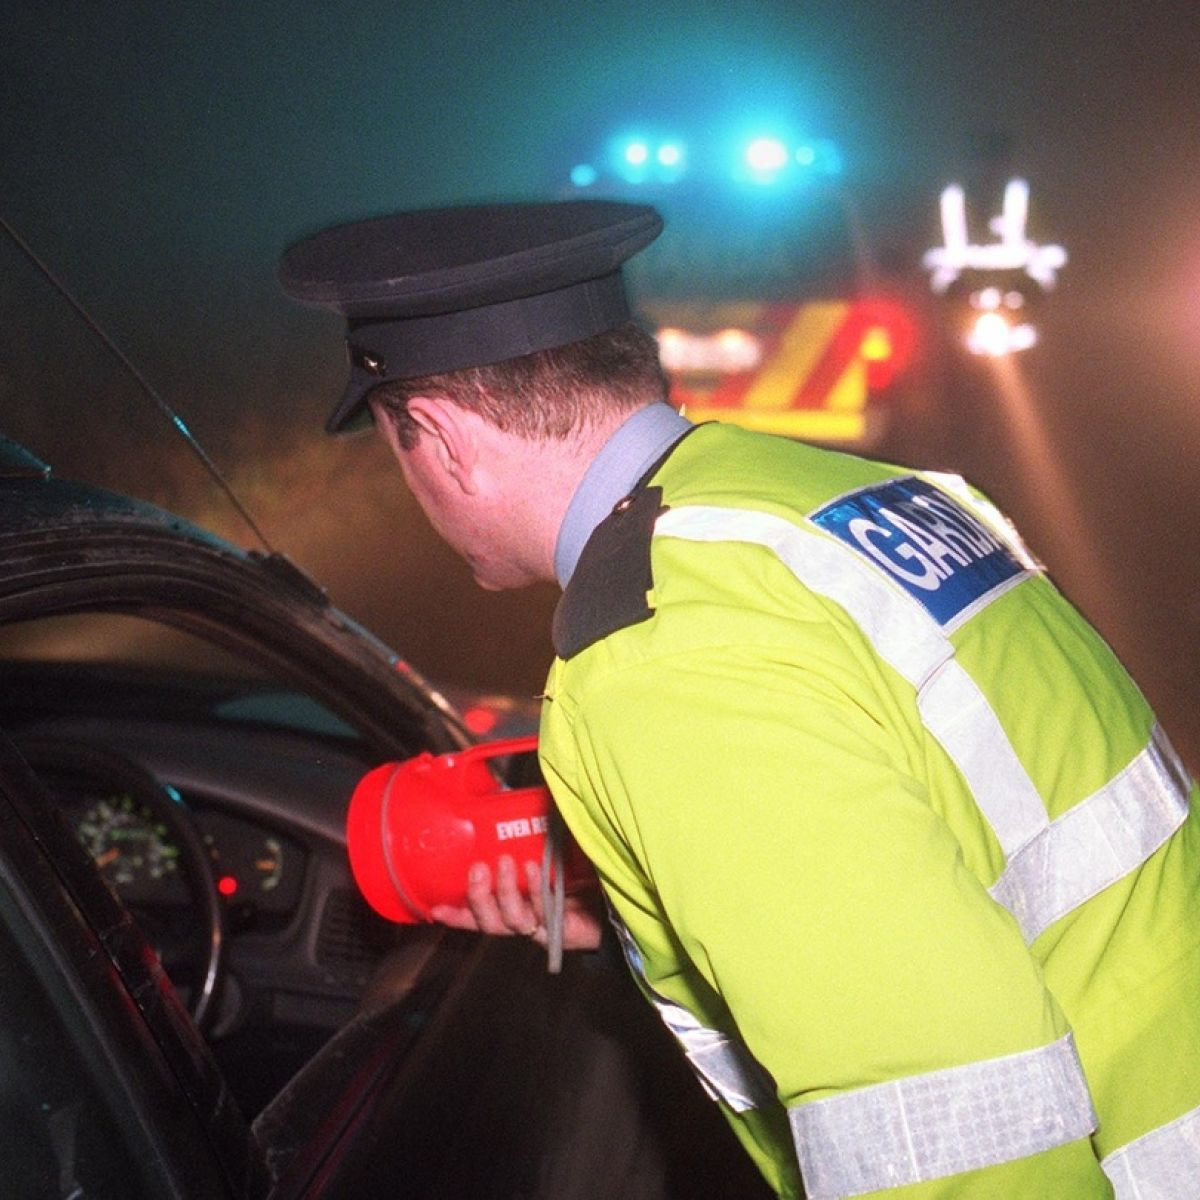 Change in laws to crack down on drink-driving